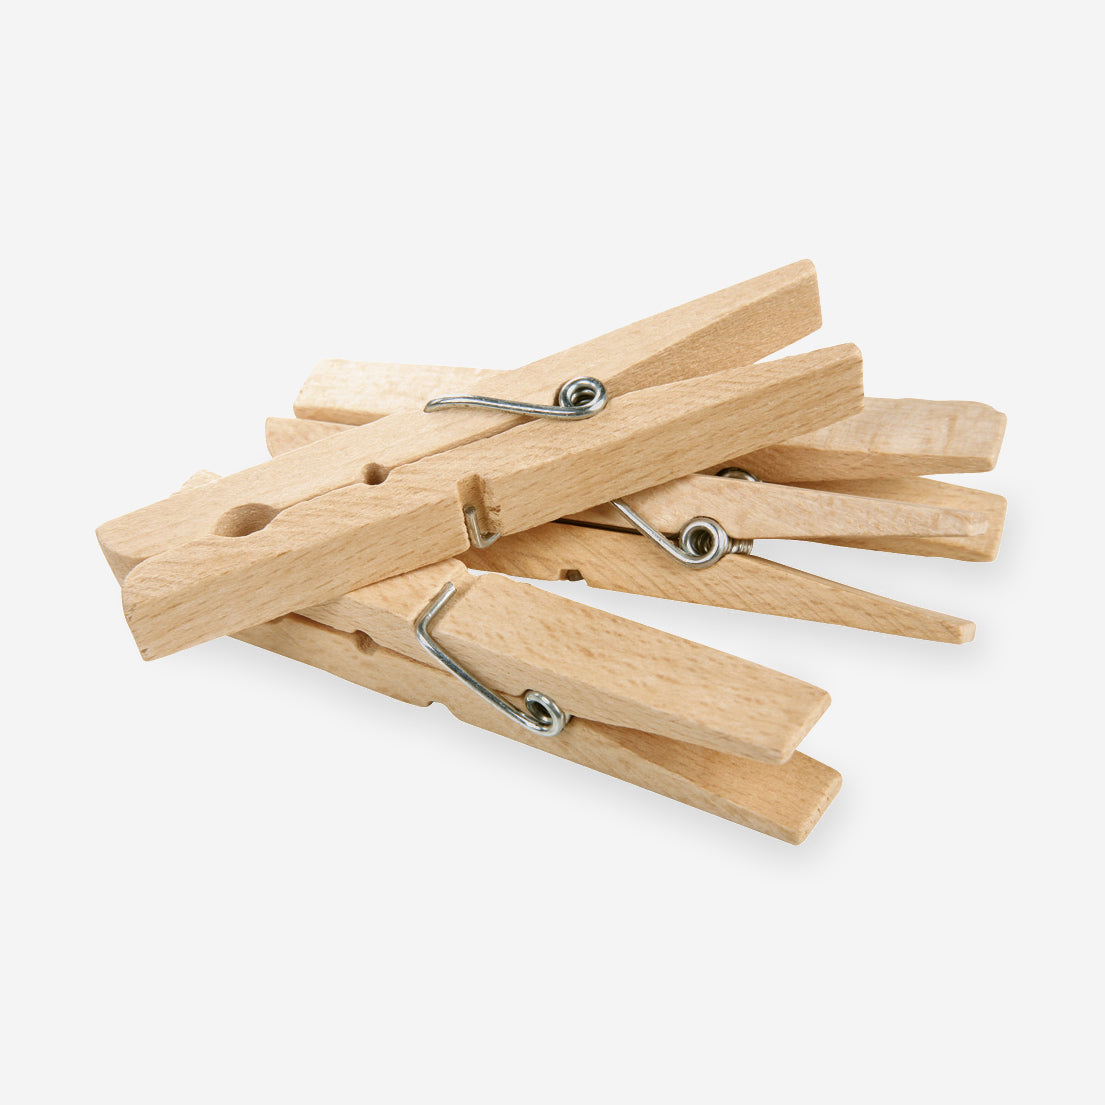 Wooden Spring Clothes Pegs